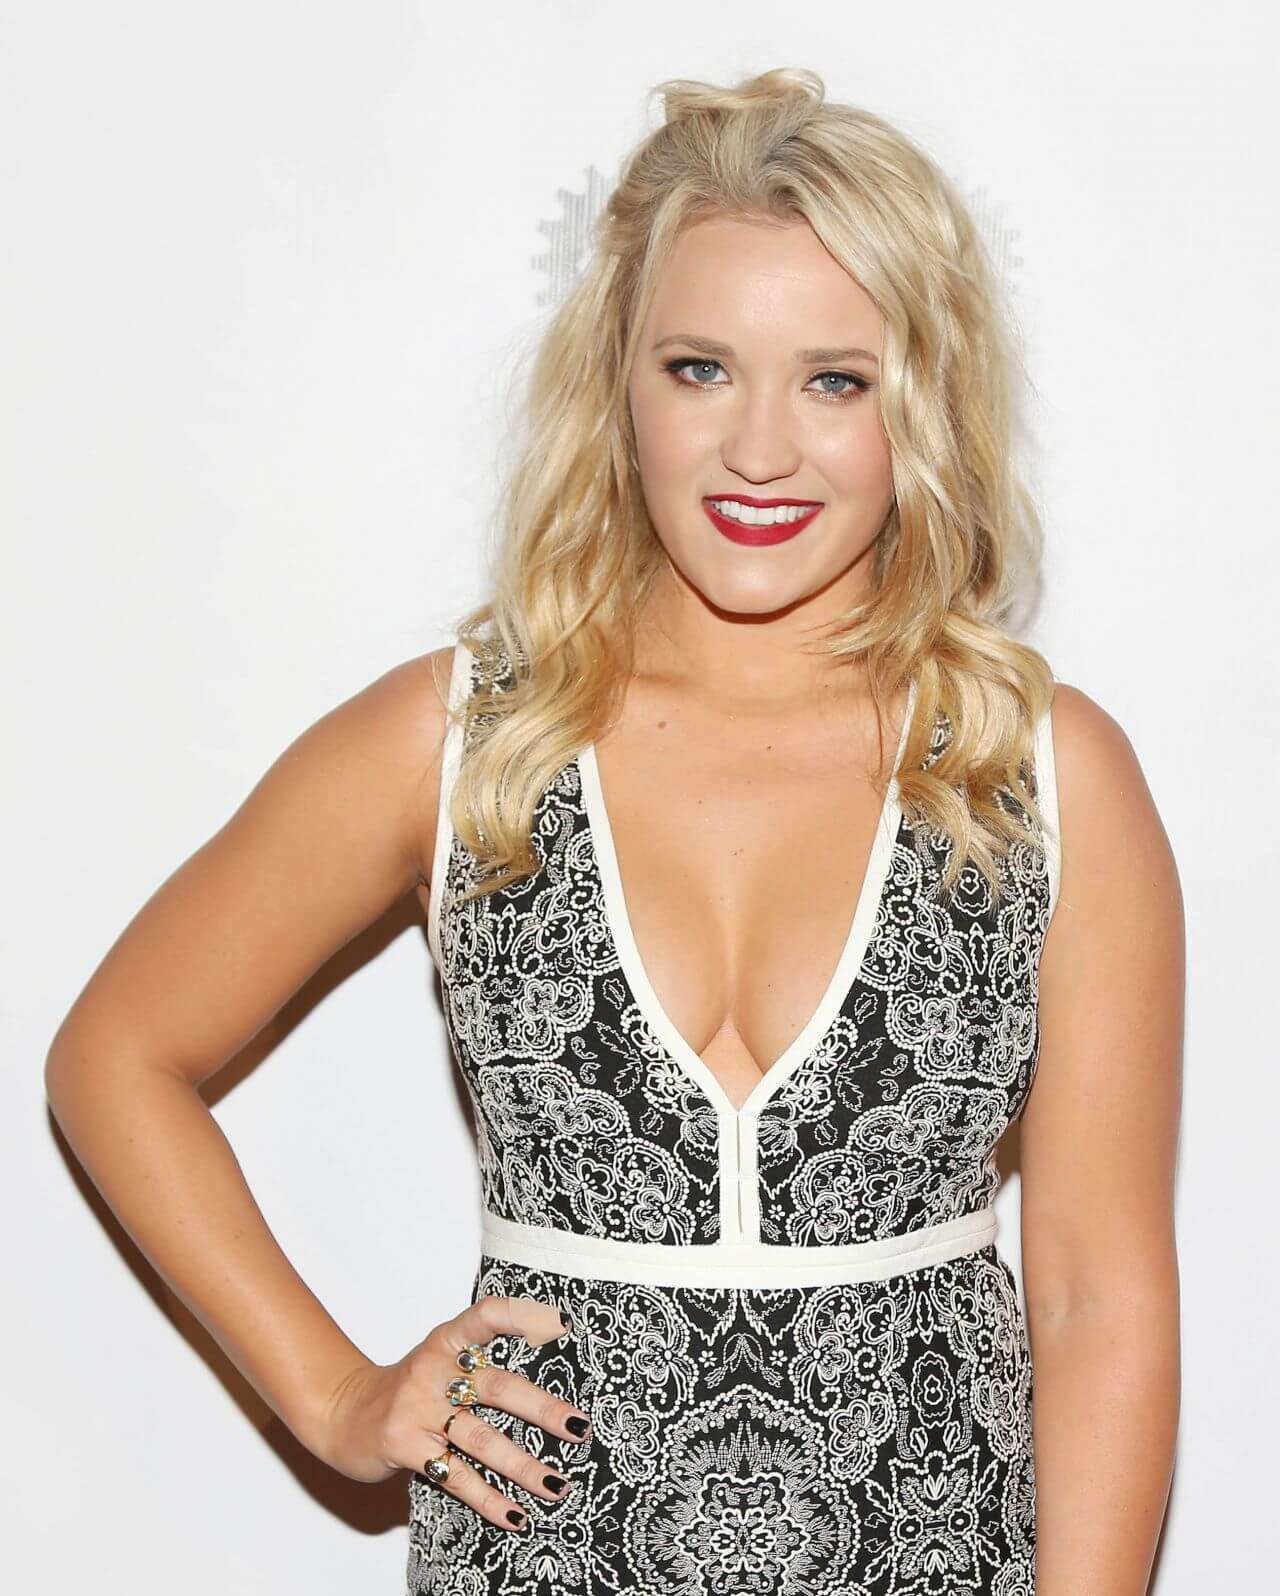 Emily Osment hot cleavages pic